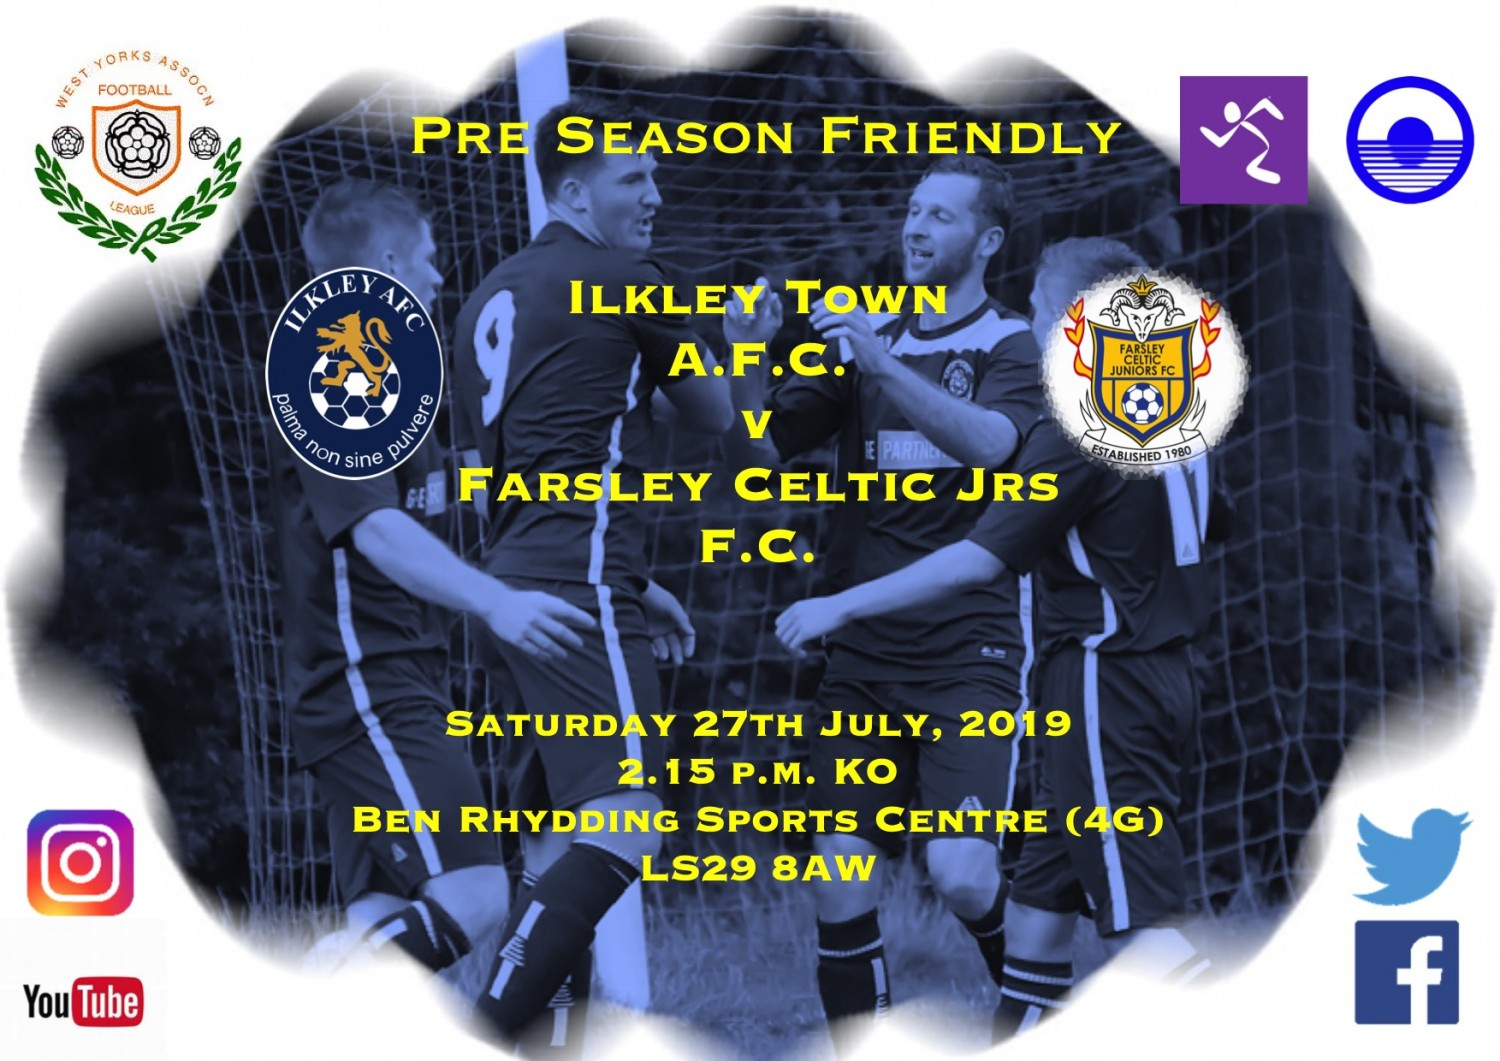 Match Preview: Ilkley Town v Farsley Celtic Jrs